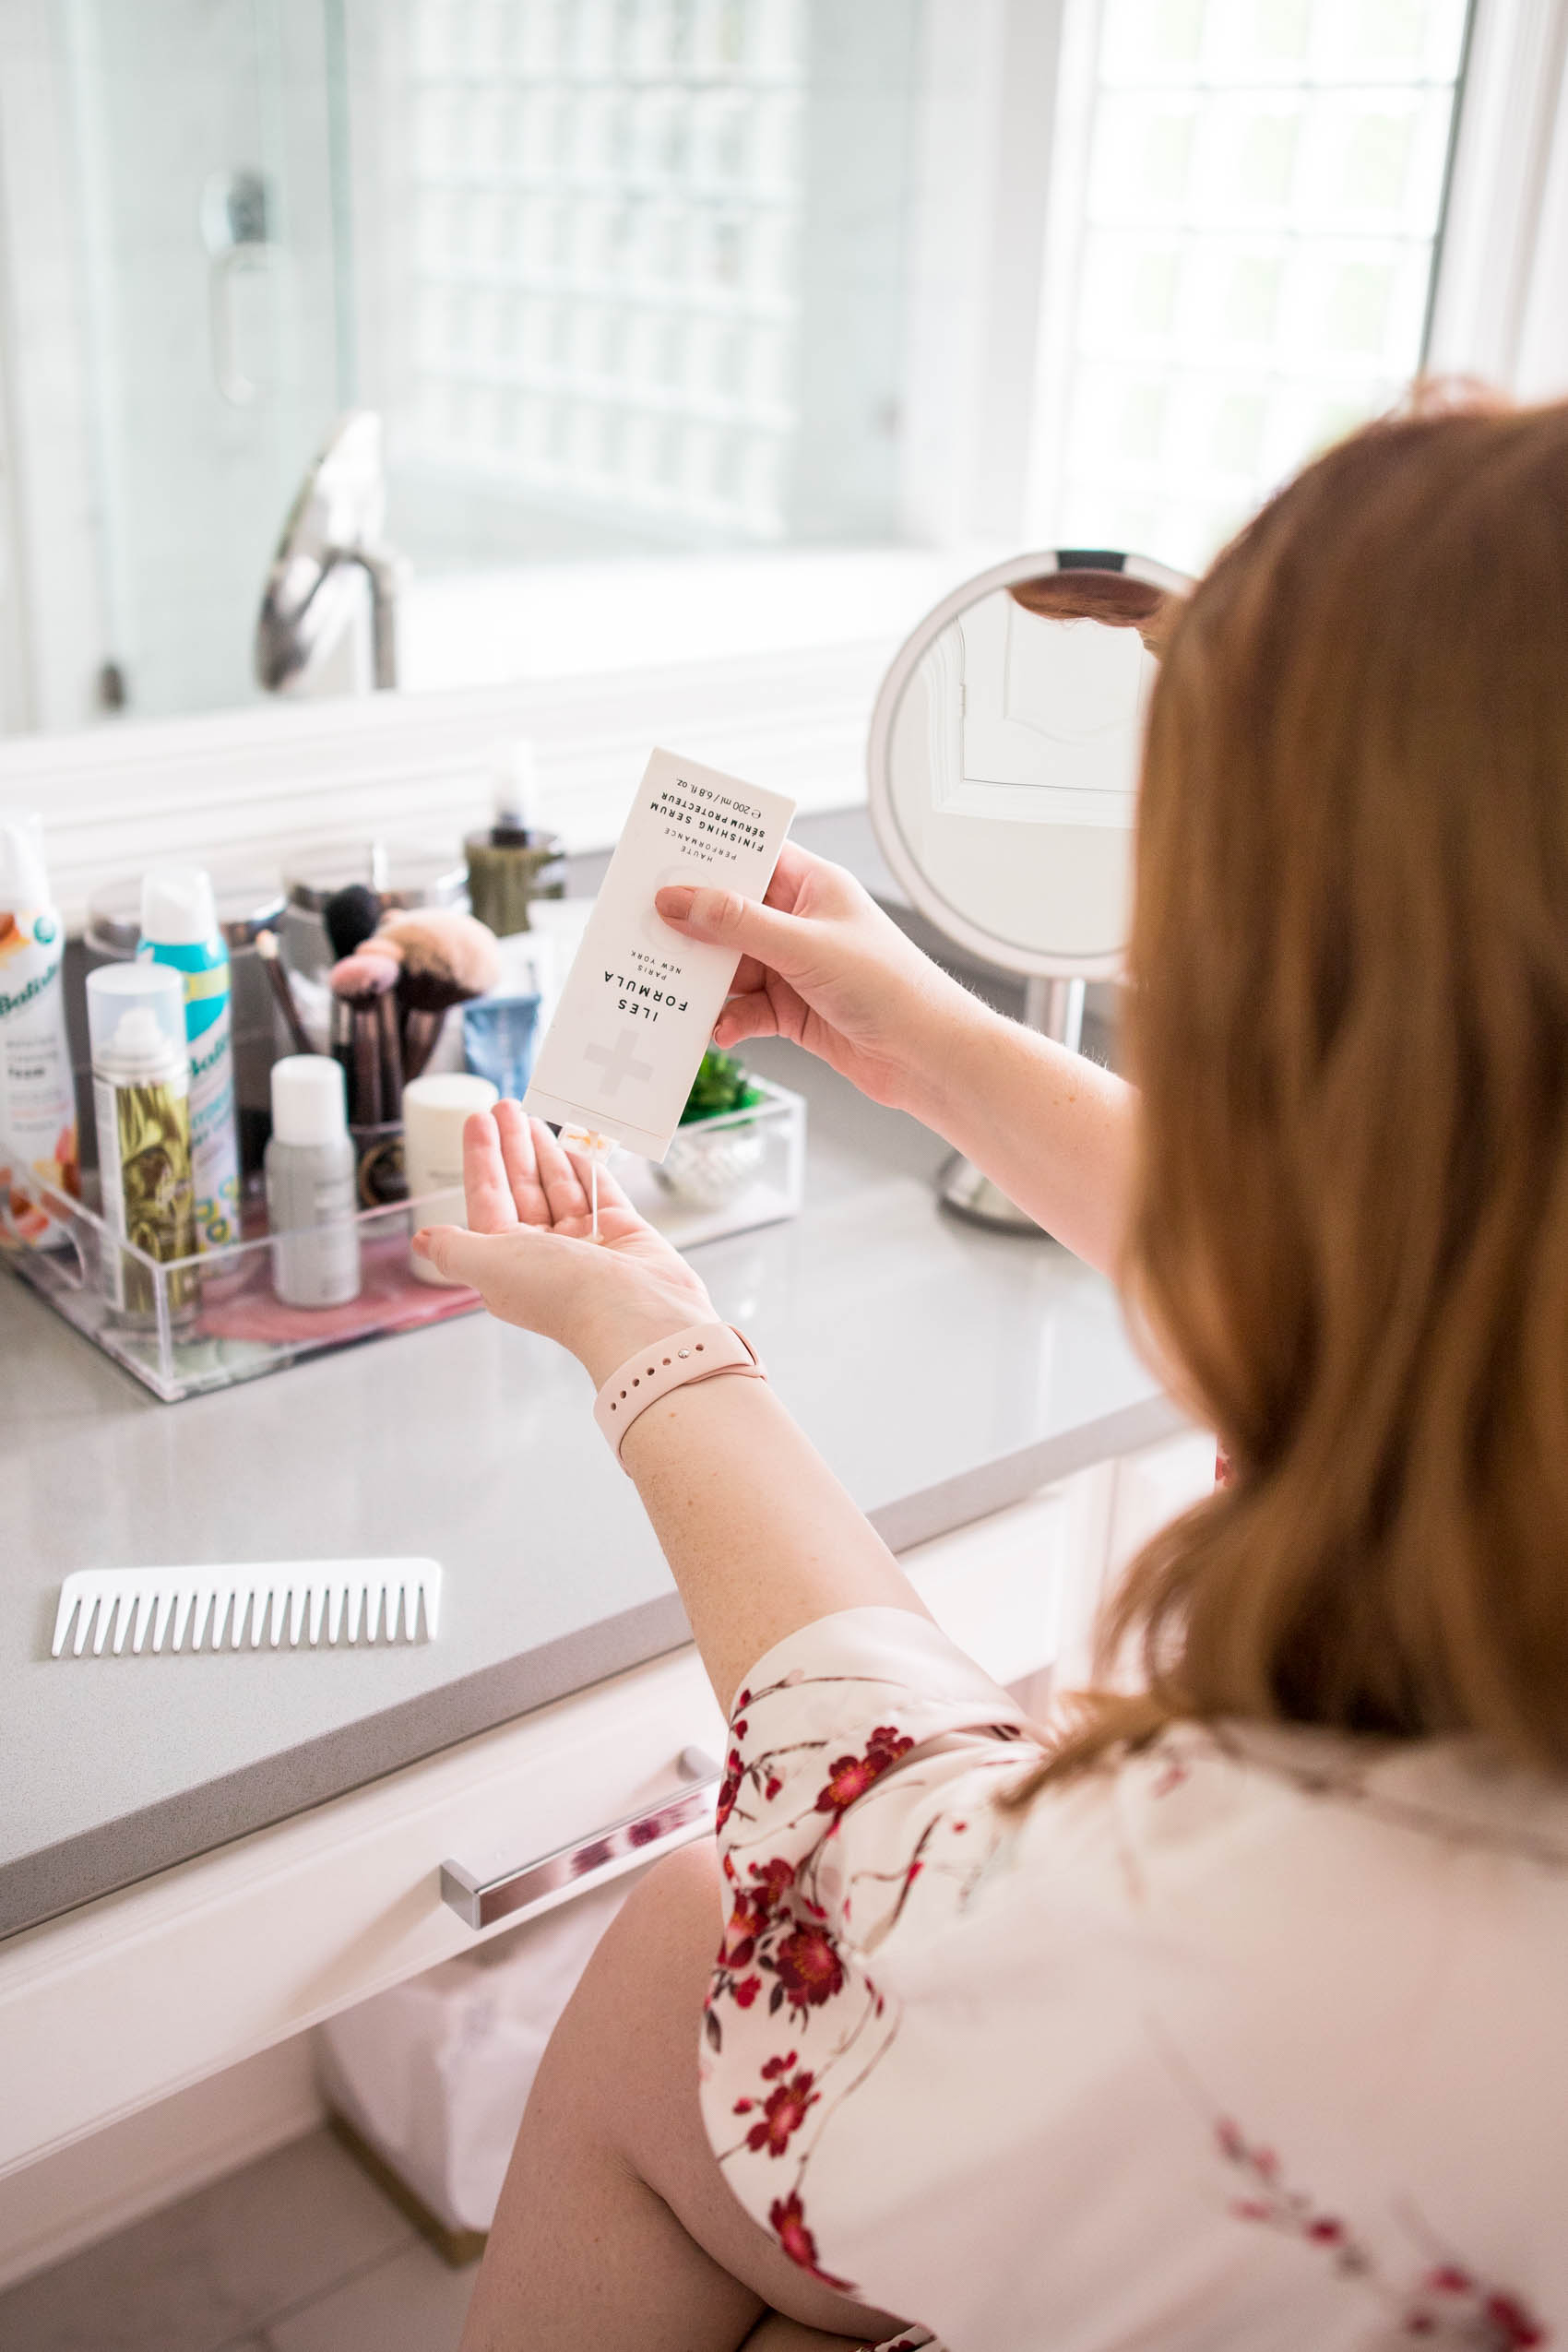 How to use Iles Formula serum as part of your haircare routine